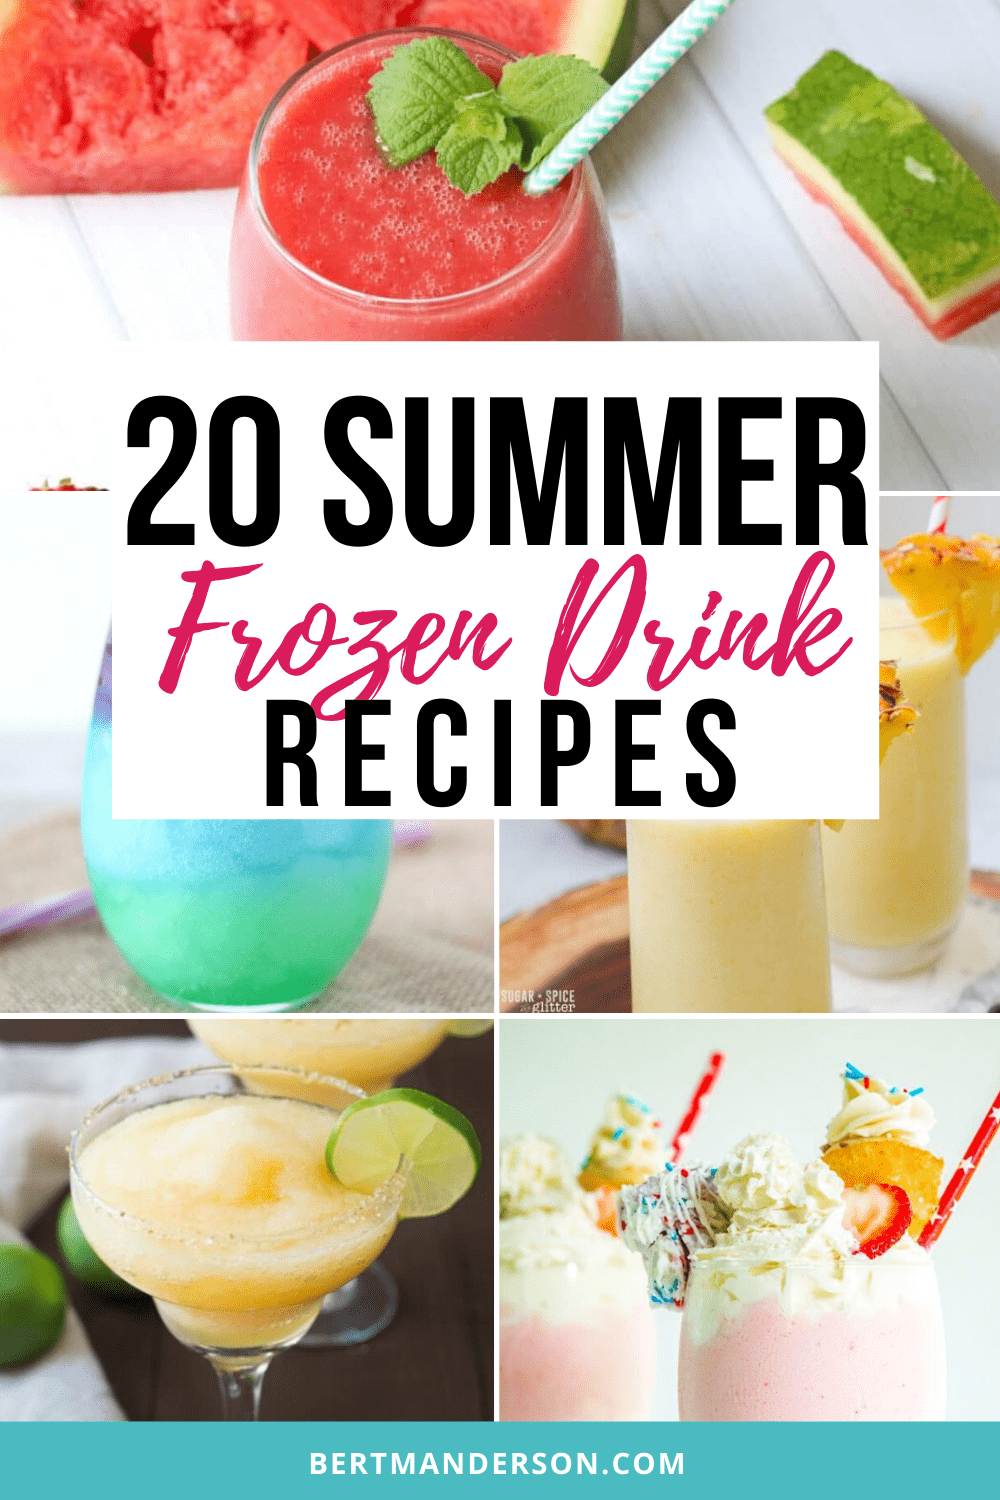 20 summer frozen drink recipes. Easy to make some kid-friendly and some boozy for the adults.